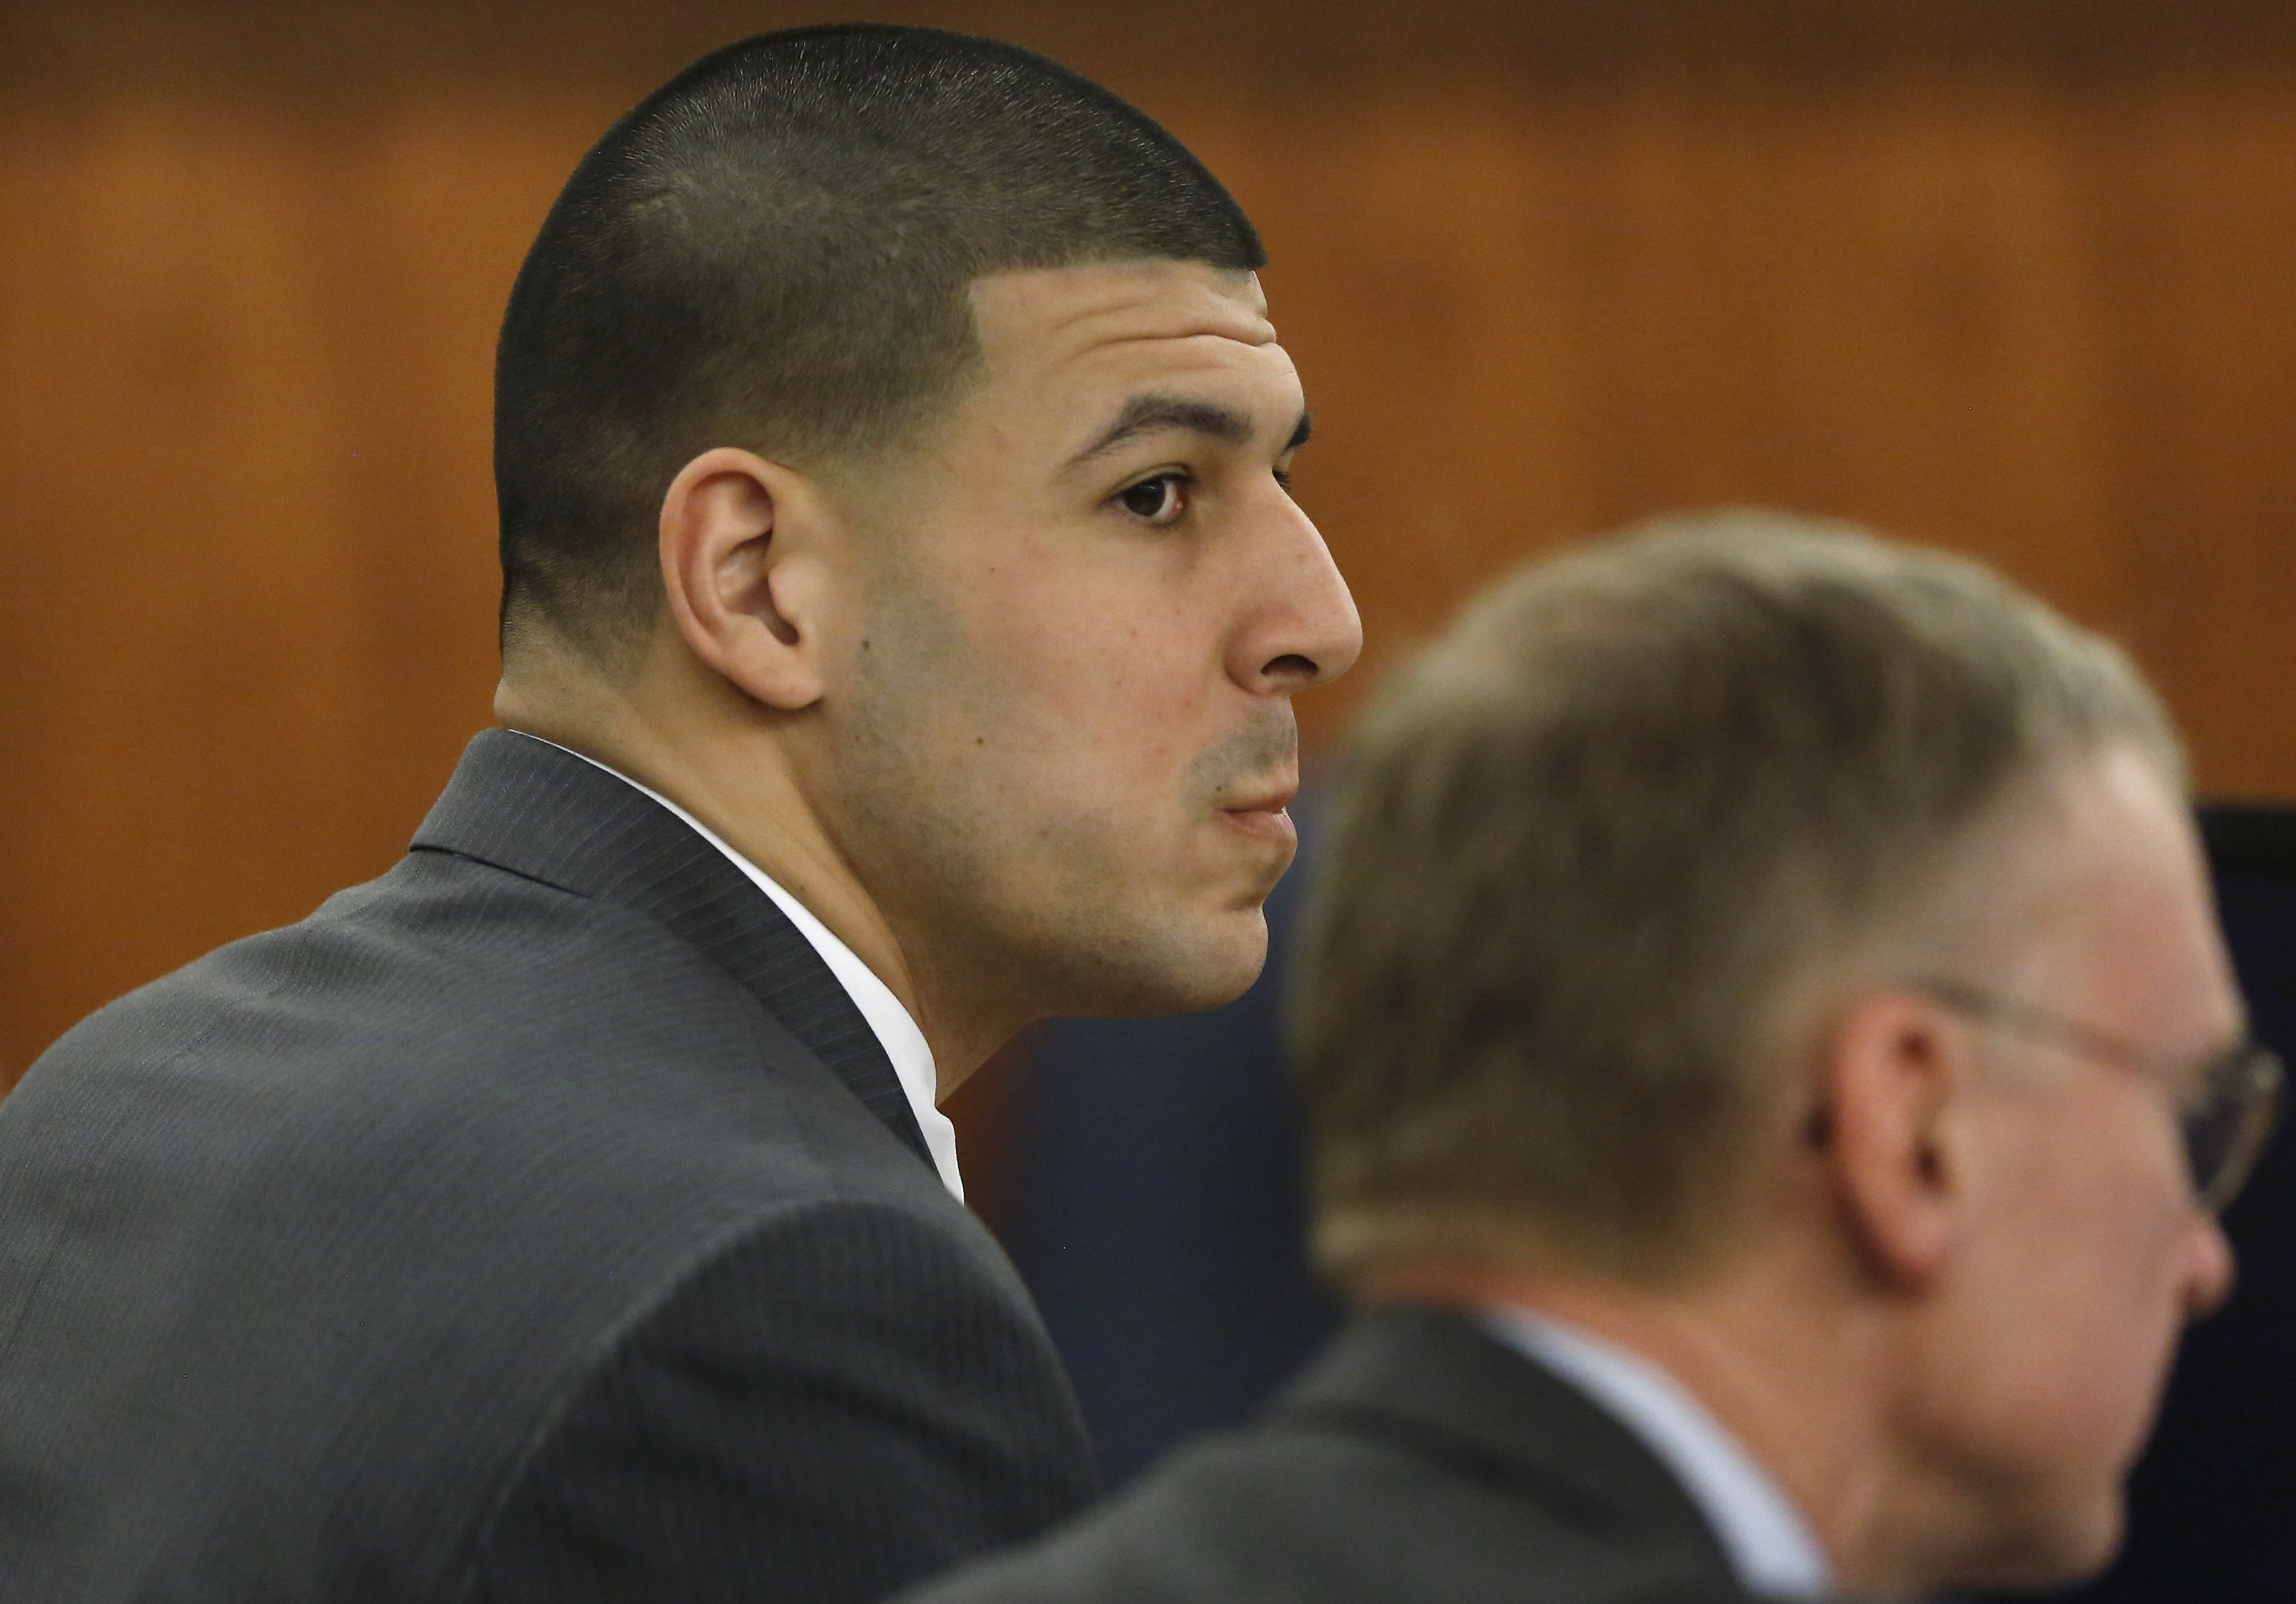 Fiancee of ex-NFL player Hernandez due to be called in trial